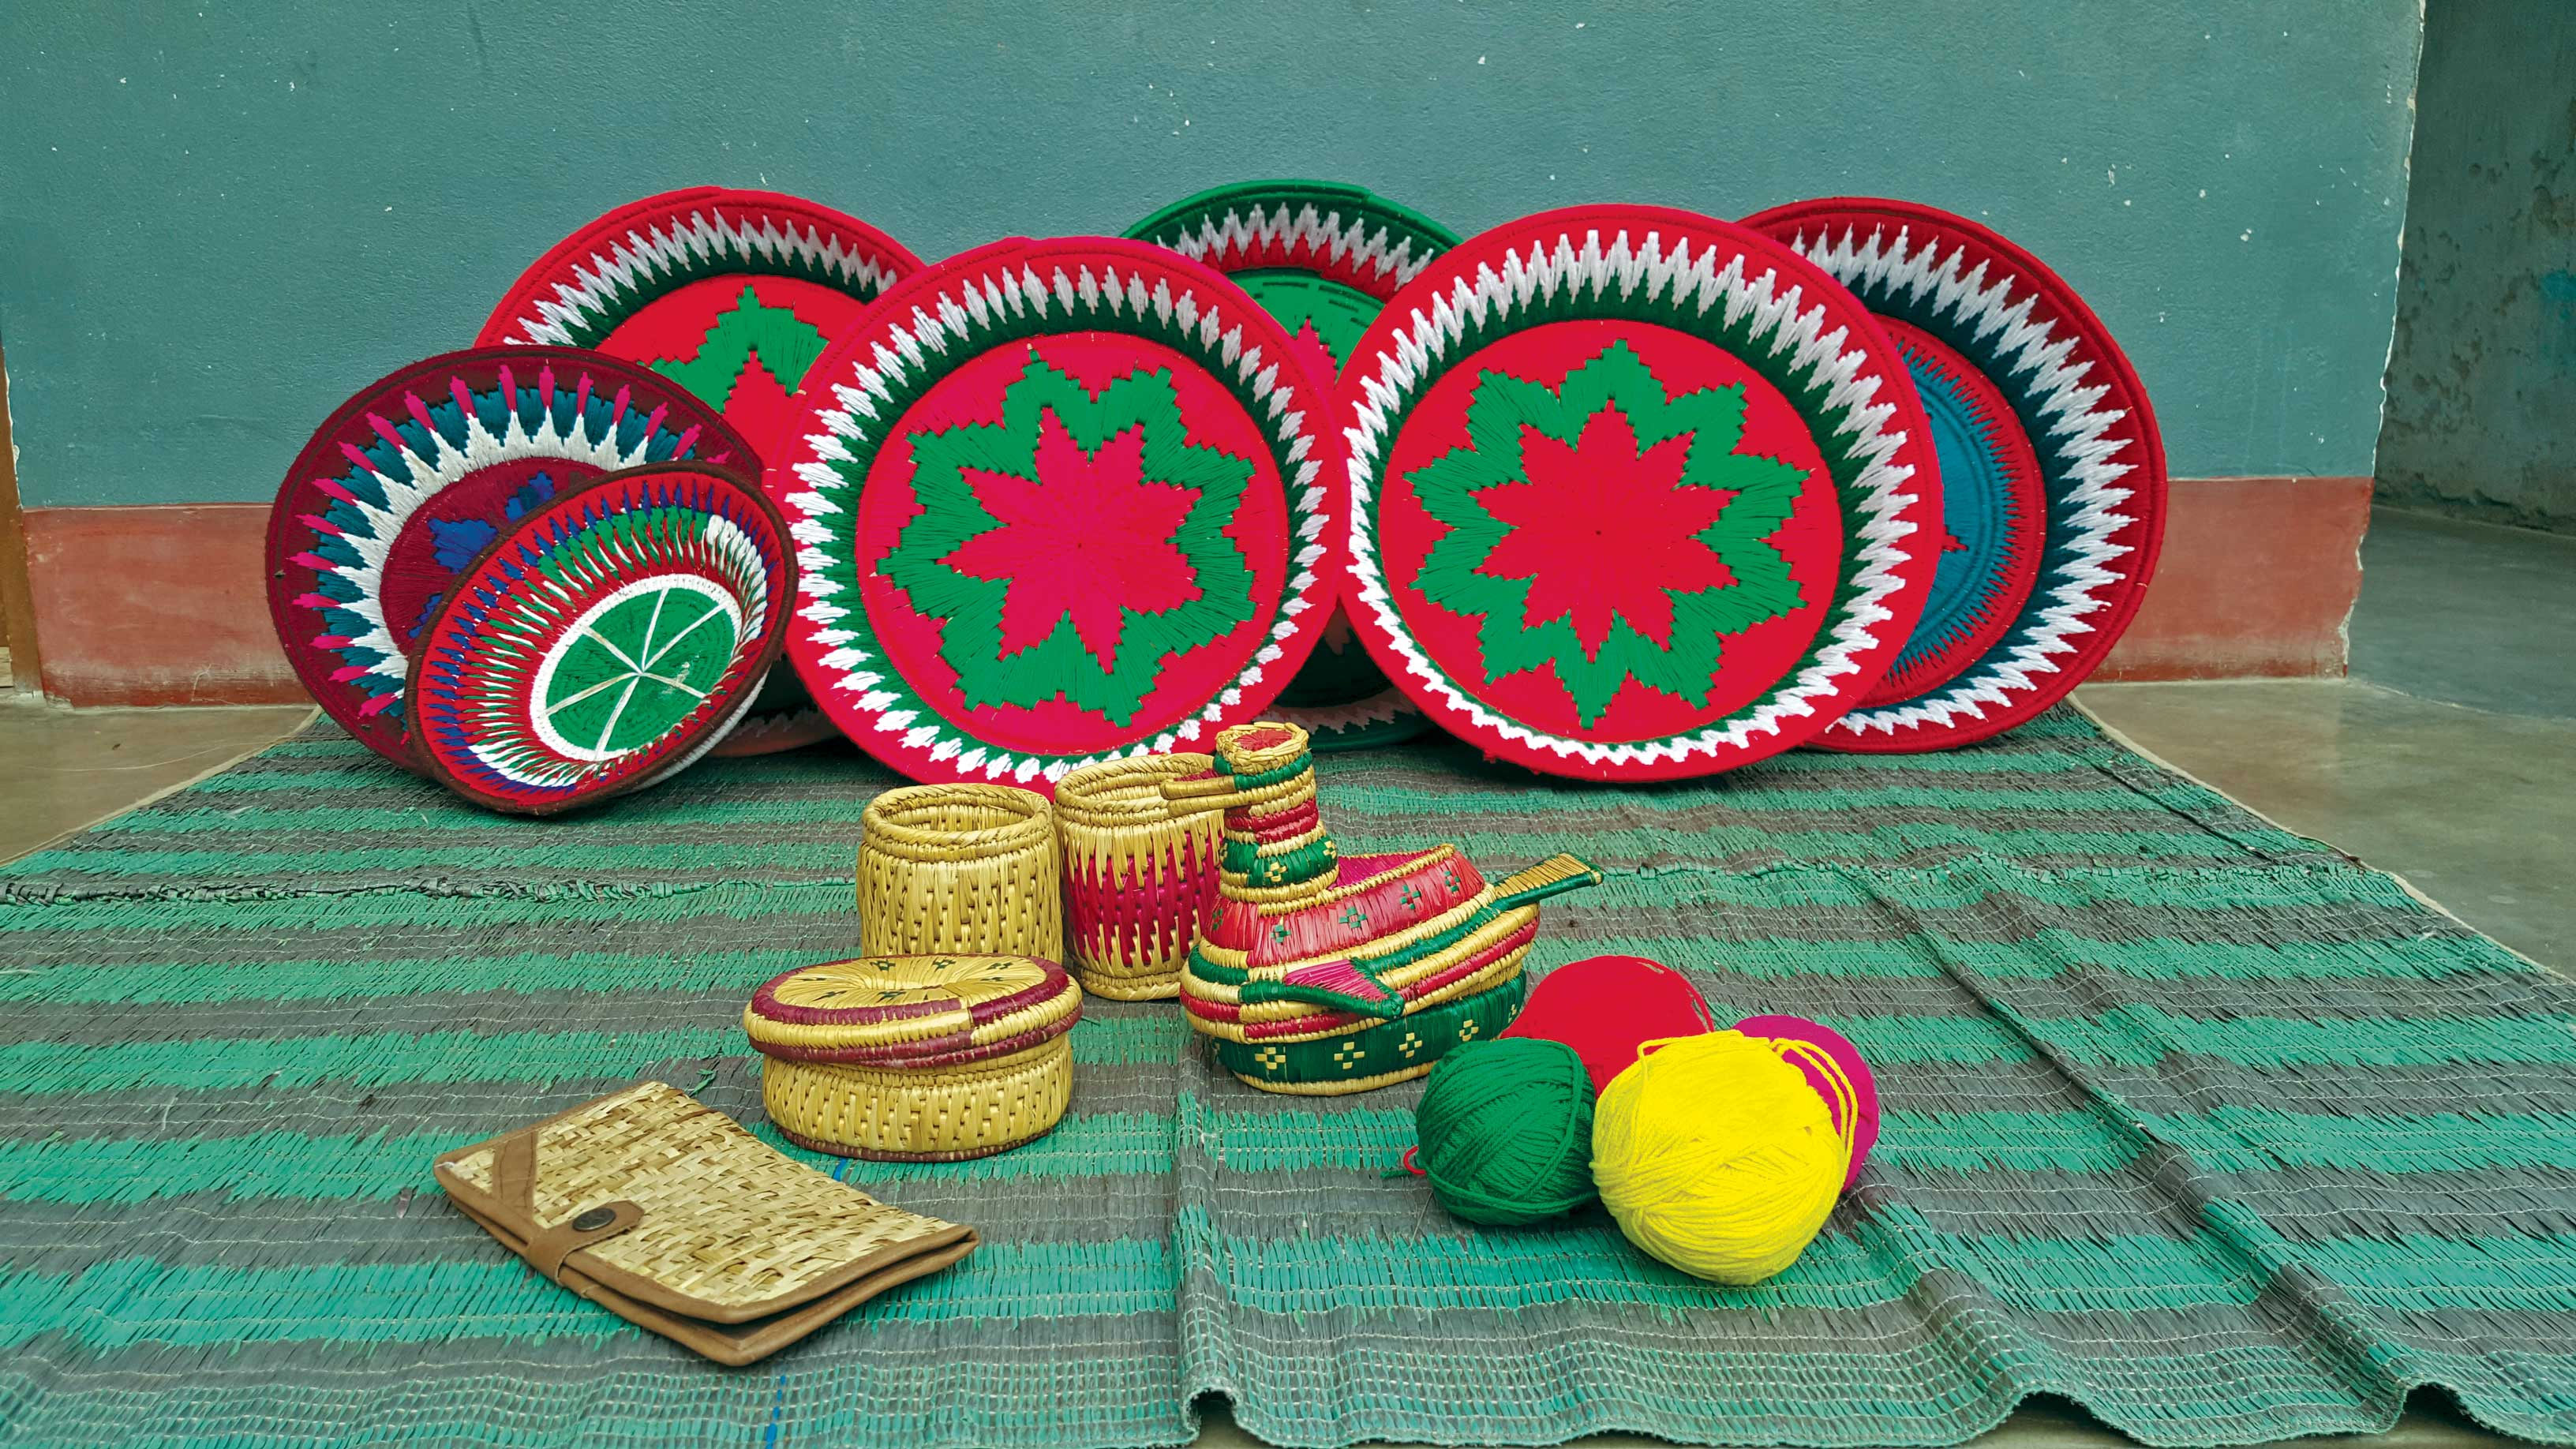 The art of weaving beautiful baskets from sikki and kans grass